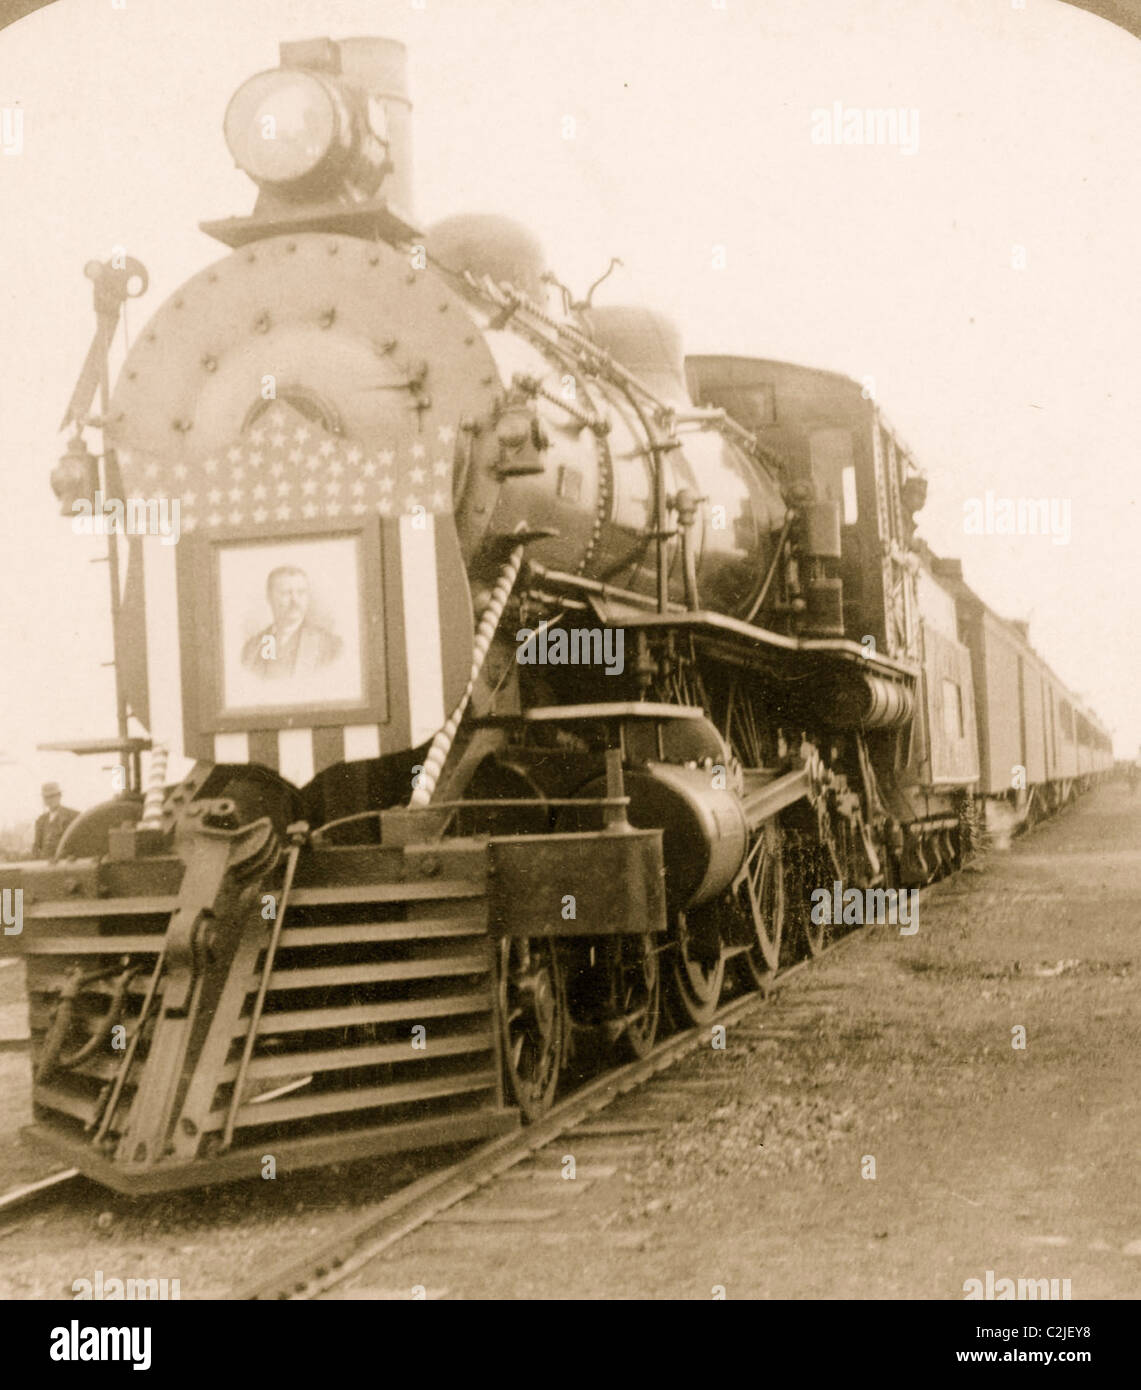 Teddy Roosevelt Campaign Train Locomotive with his Image as an escutcheon on face of the Engine - Stock Image